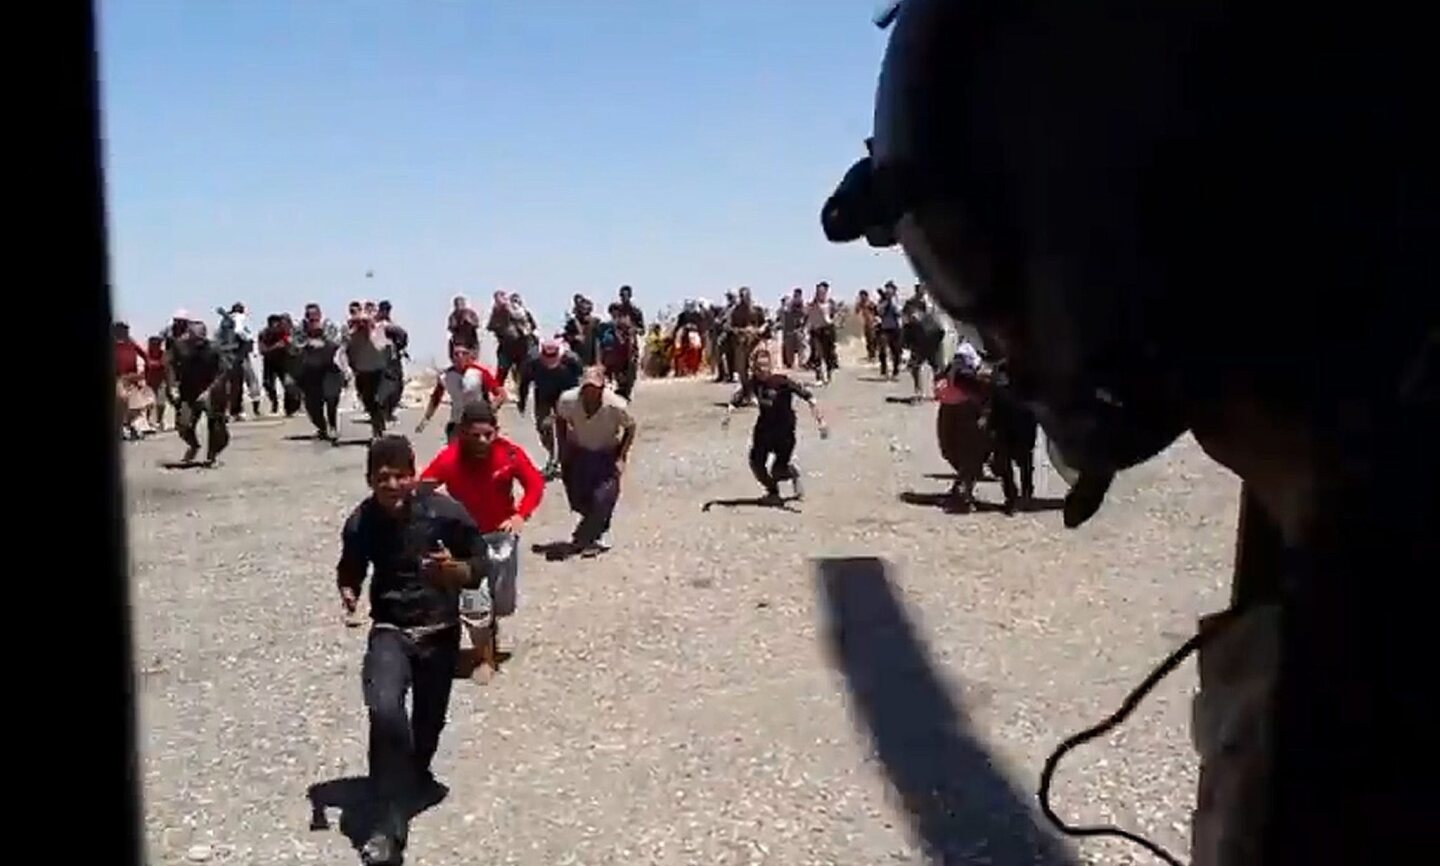 An image from a video by Austrian politician Michel Reimon shows Iraqi refugees racing to board an Iraqi helicopter aid flight in the north of the country.